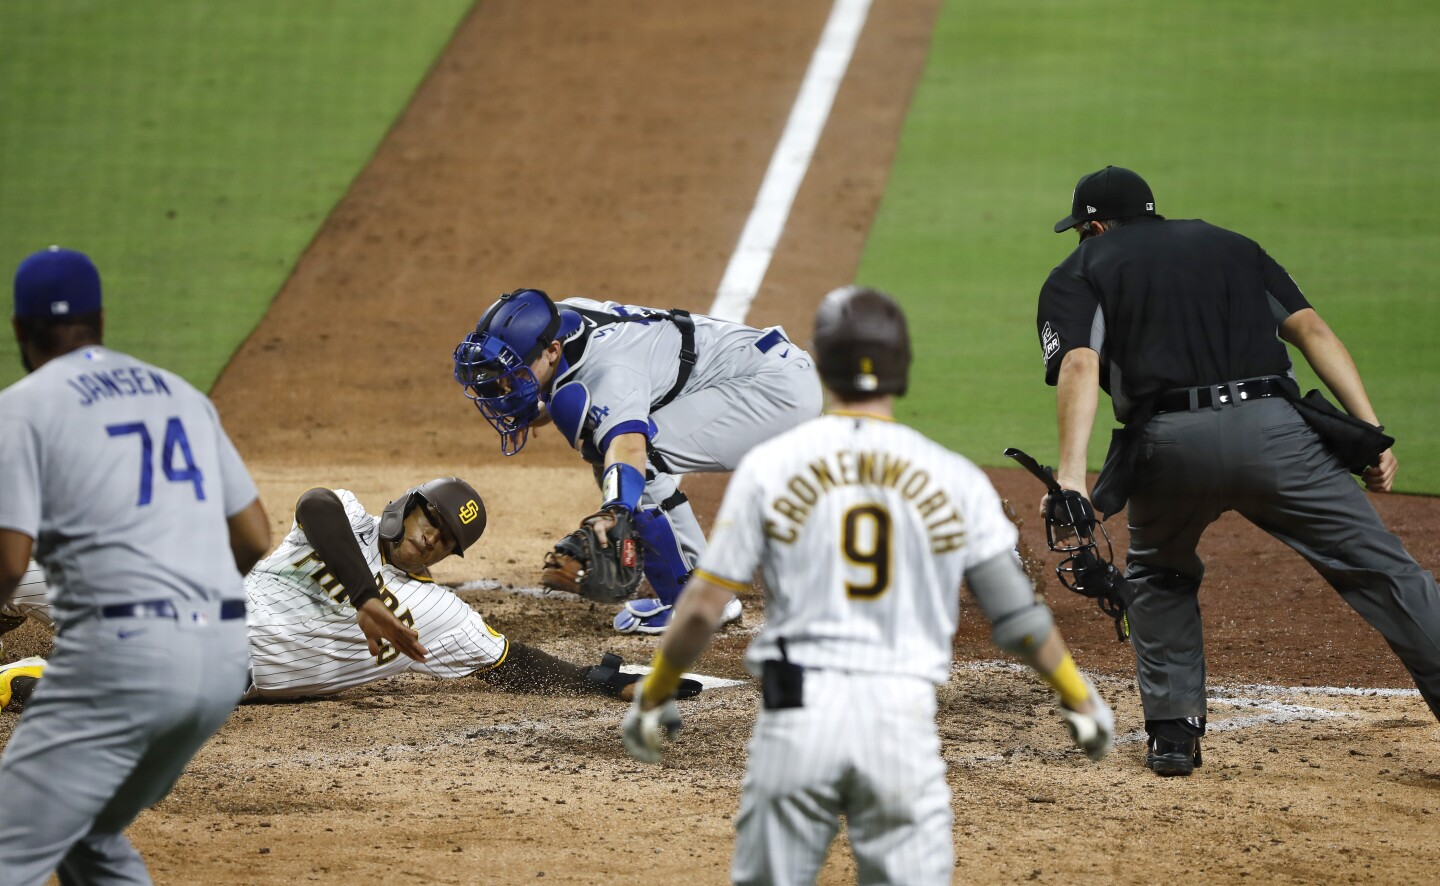 San Diego Padres Trent Grisham is tagged out at home plate by Los Angeles Dodgers catcher Will Smith as he tries to score tagging up in the 9th inning at Petco Park on August 5, 2020.